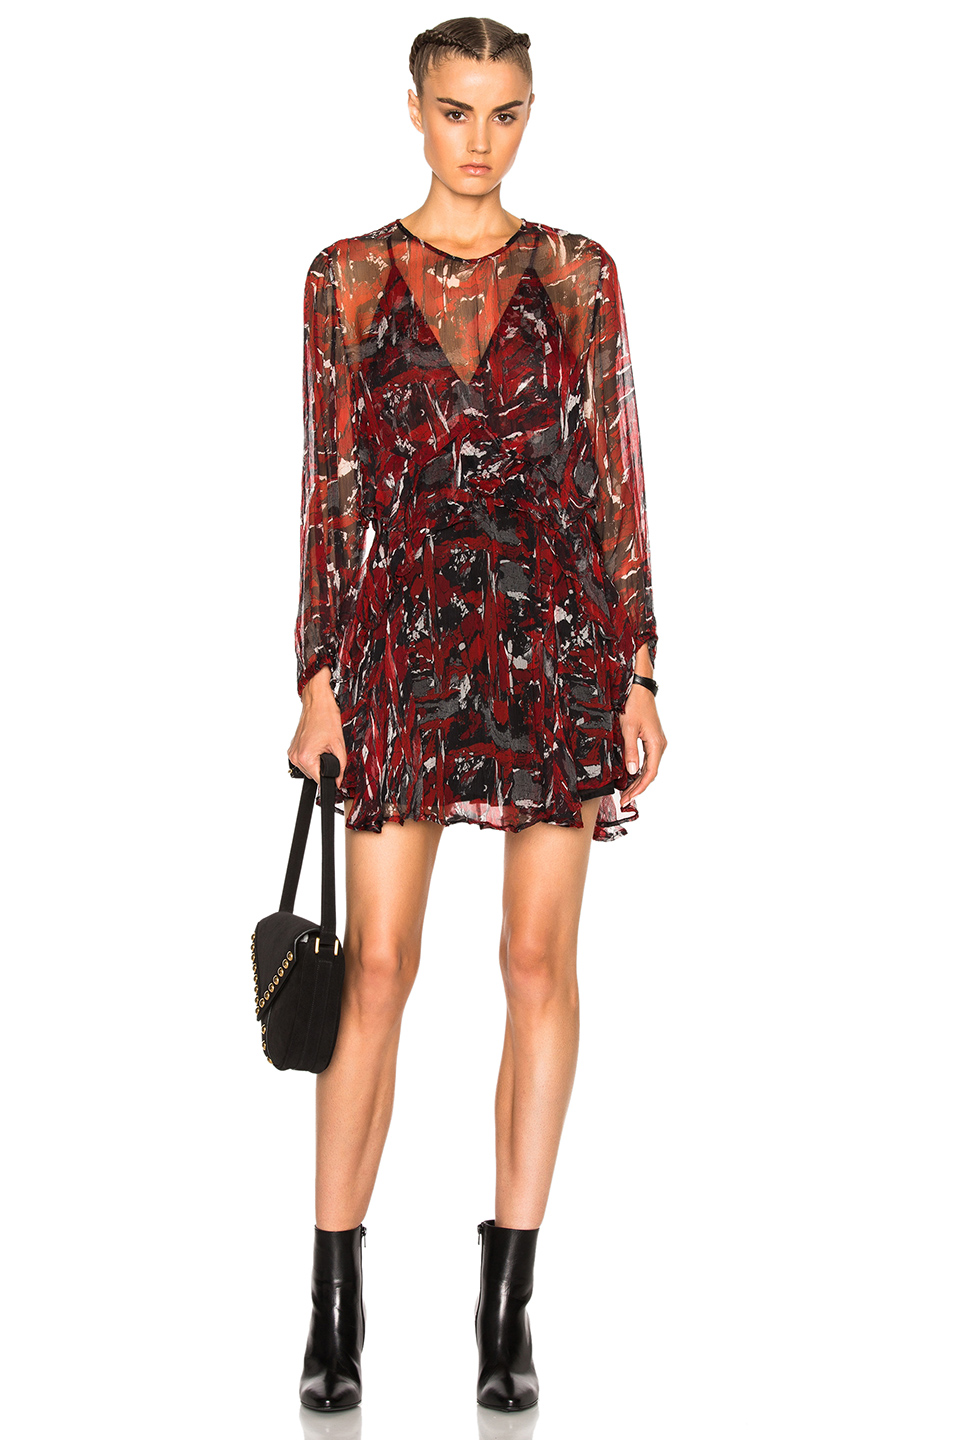 IRO Ressey Dress in Red,Abstract